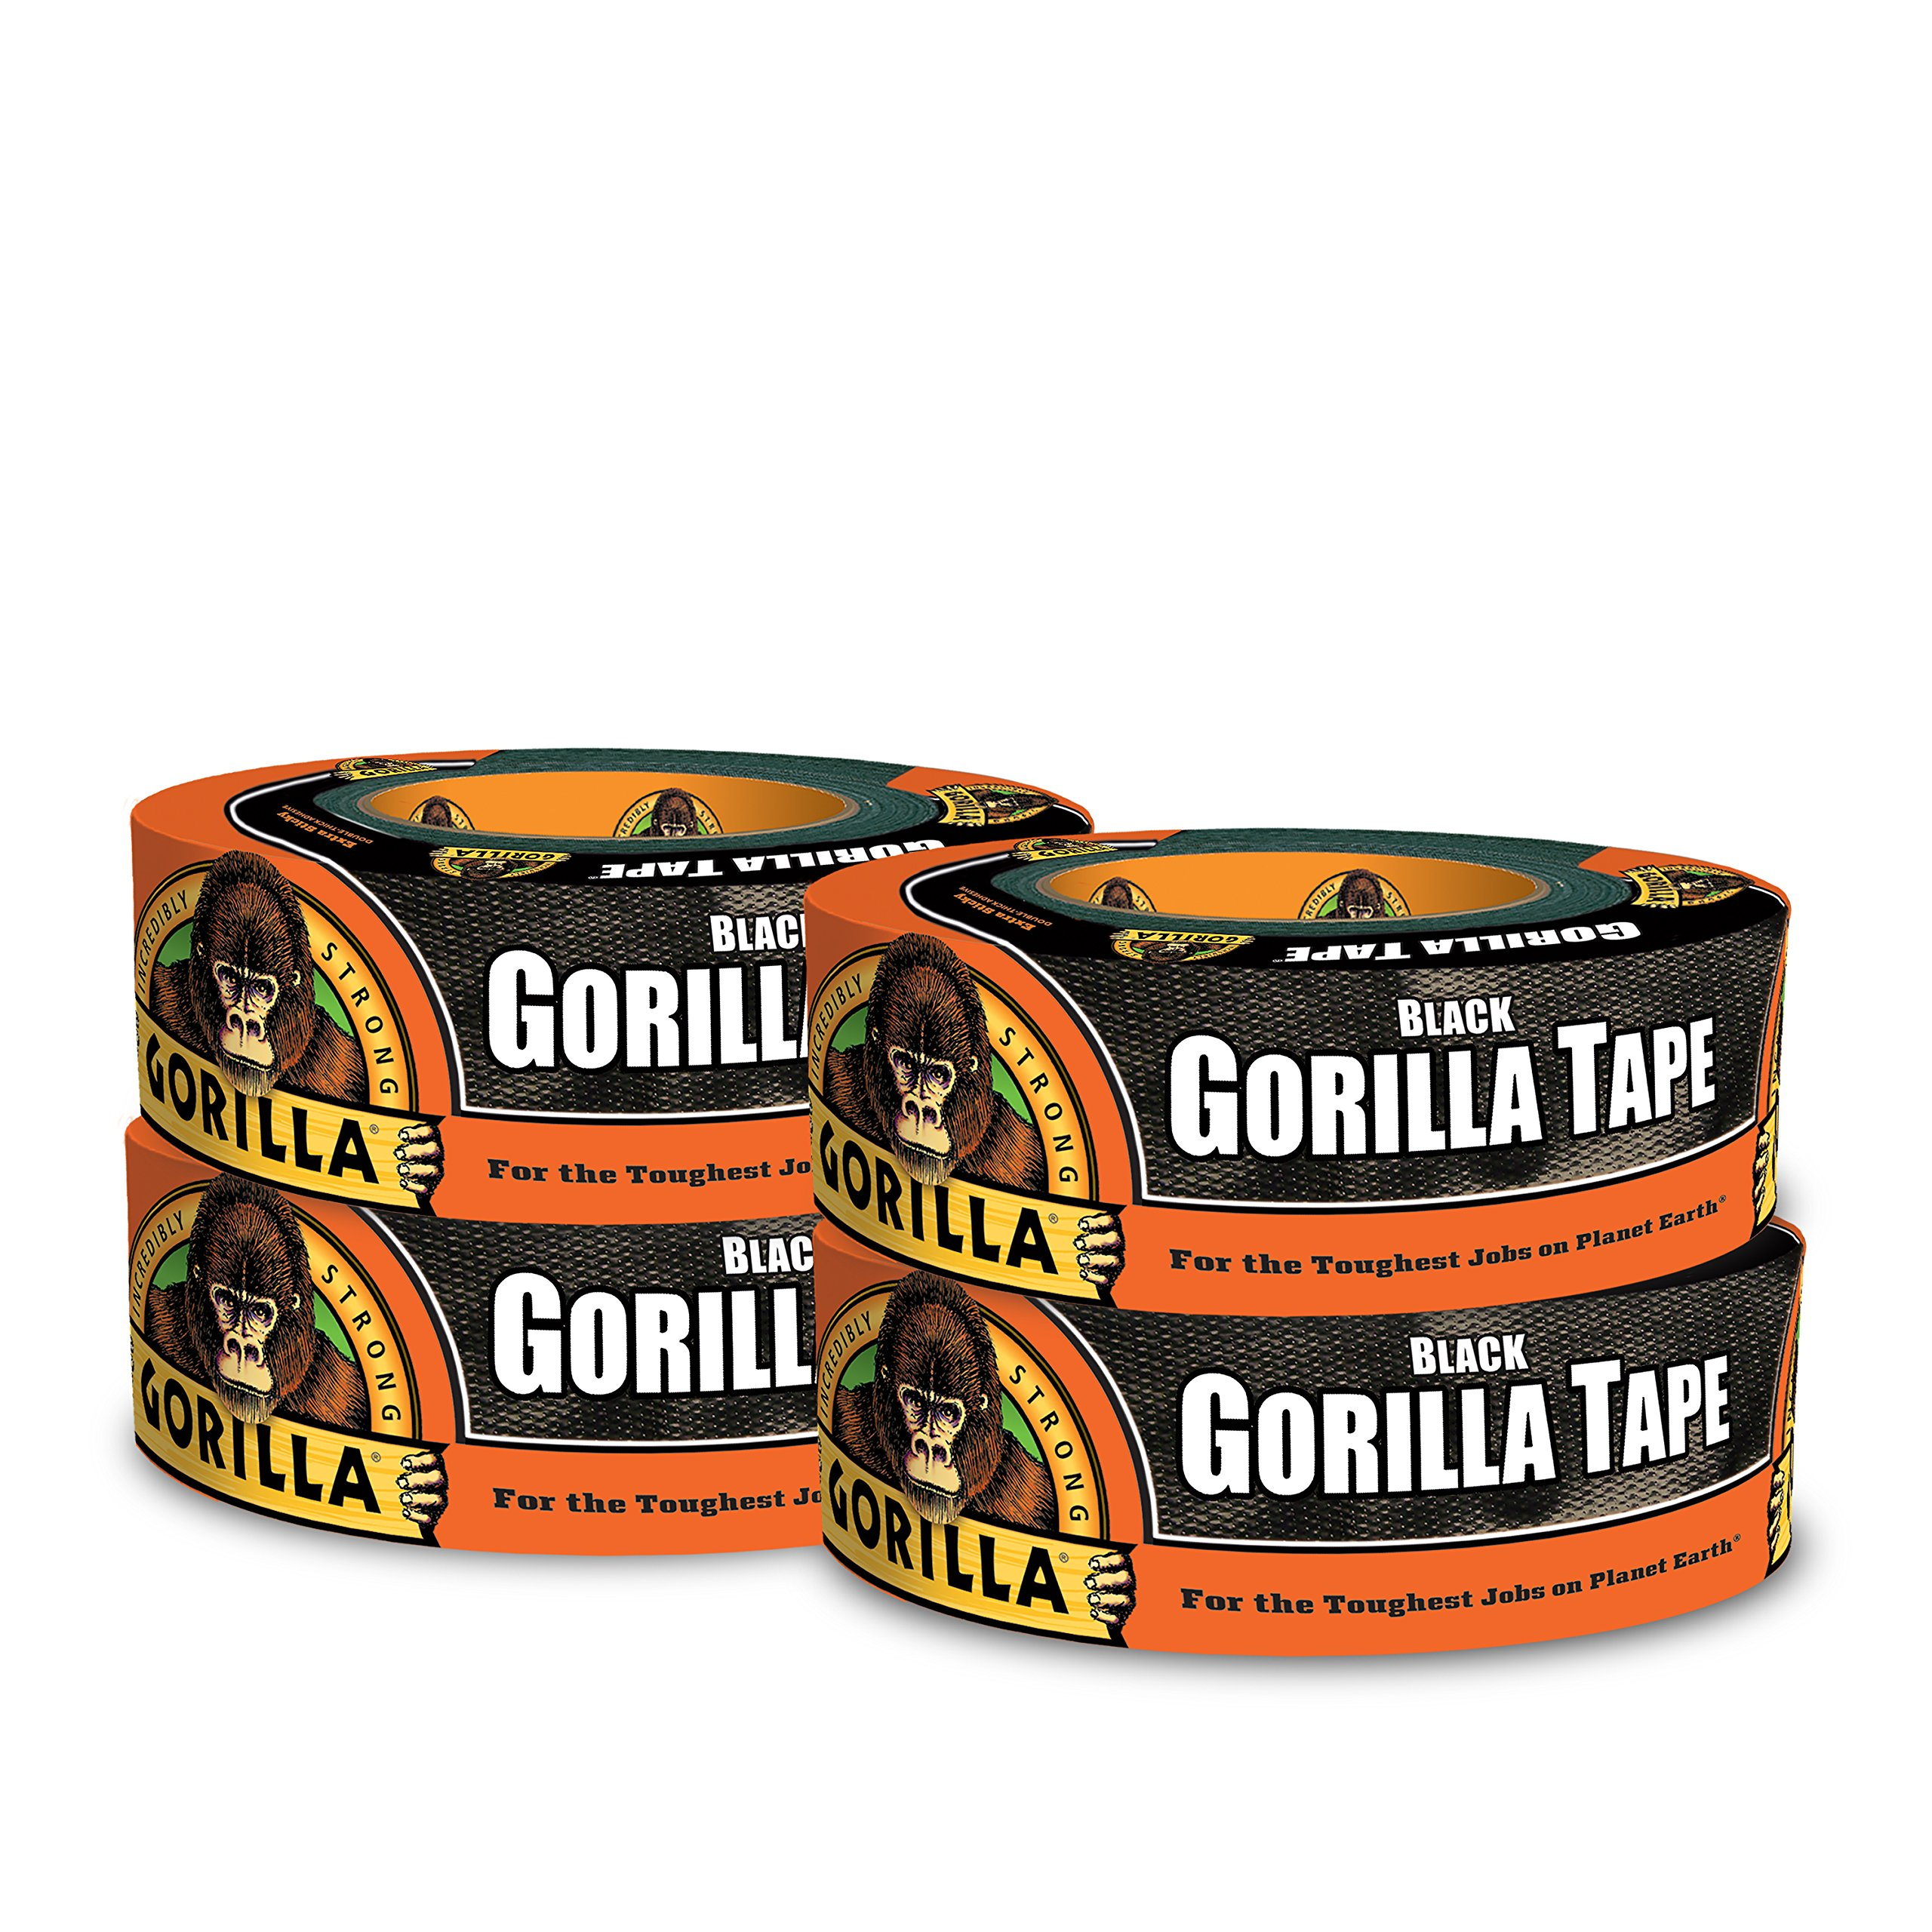 Gorilla Tape, Black Duct Tape, 1.88'' x 35 yd, Black, (Pack of 4) by Gorilla